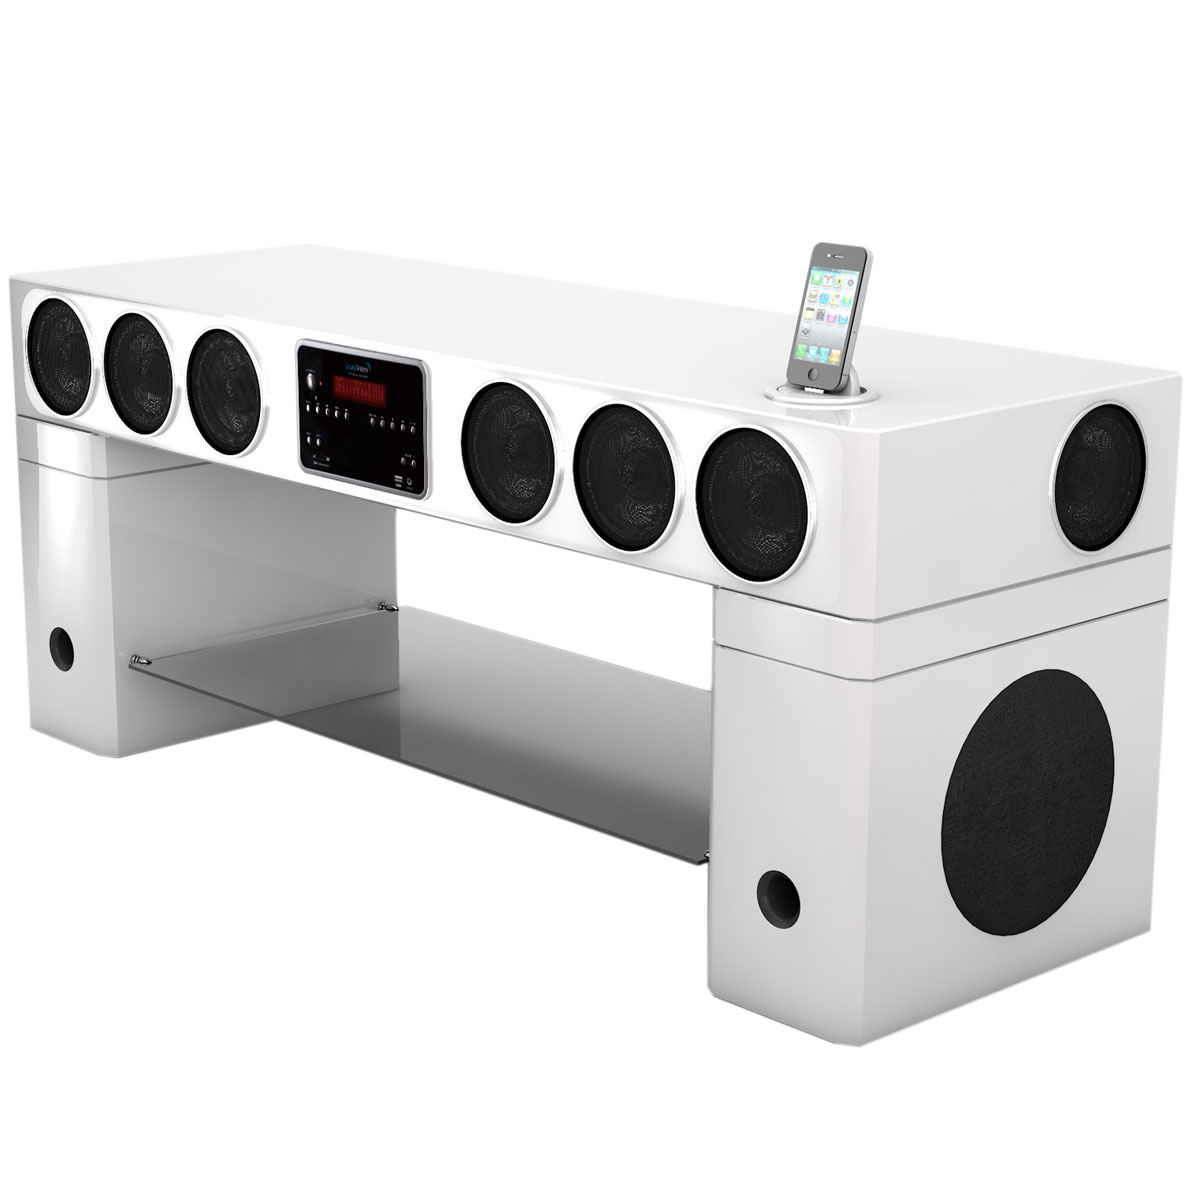 Soundvision Sv 440 Bt Blanc Ensemble Home Cin Ma For Meuble Tv Barre De Son  Integree